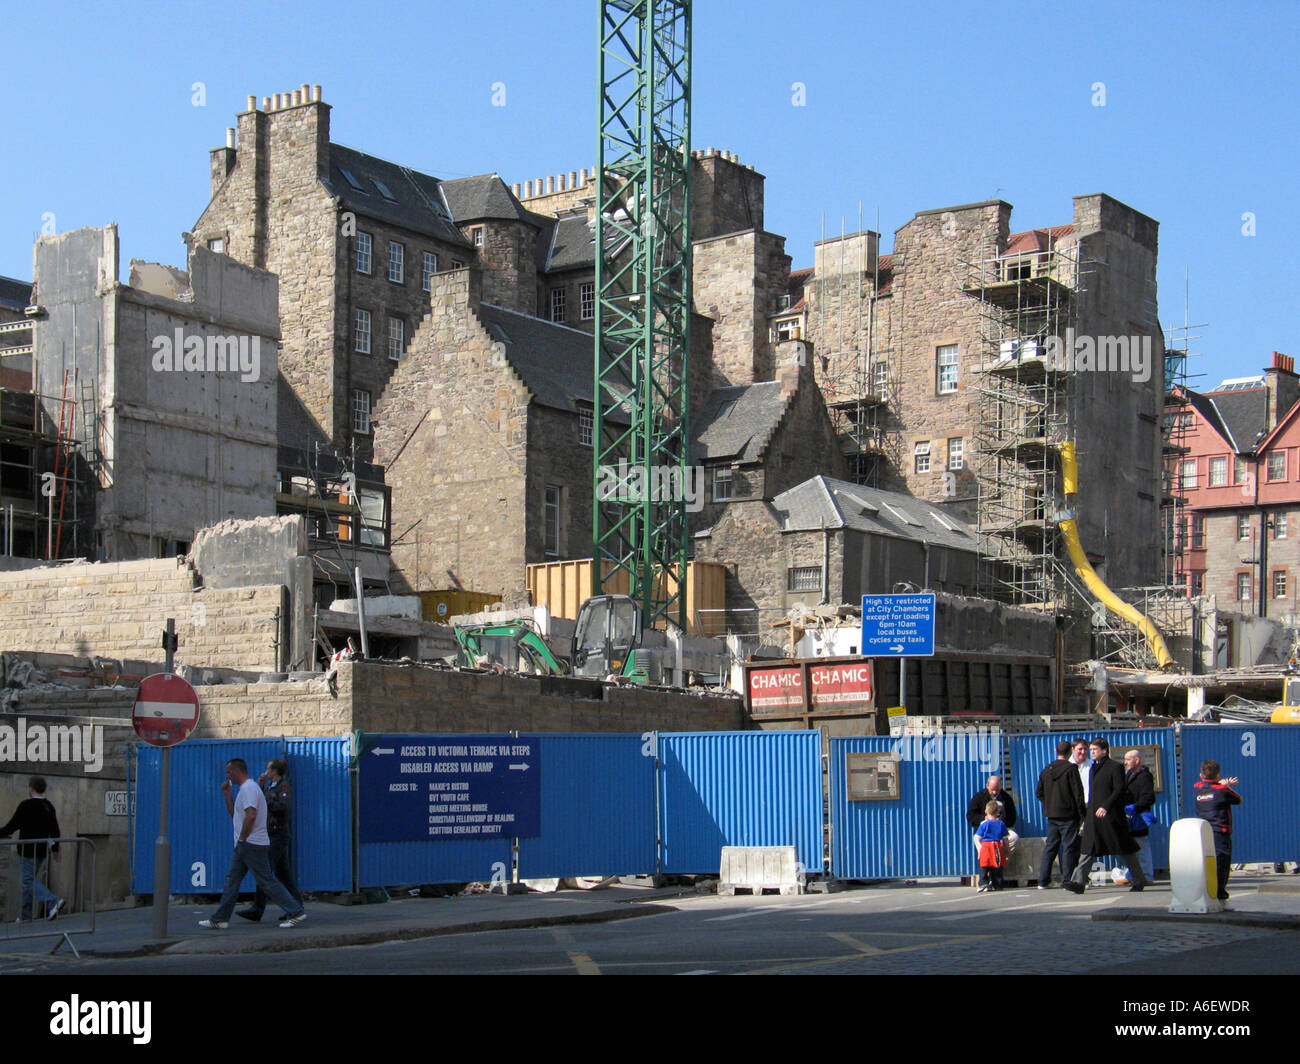 The site of the demolished Lothian Region Council HQ on George IV Bridge, Edinburgh - Stock Image